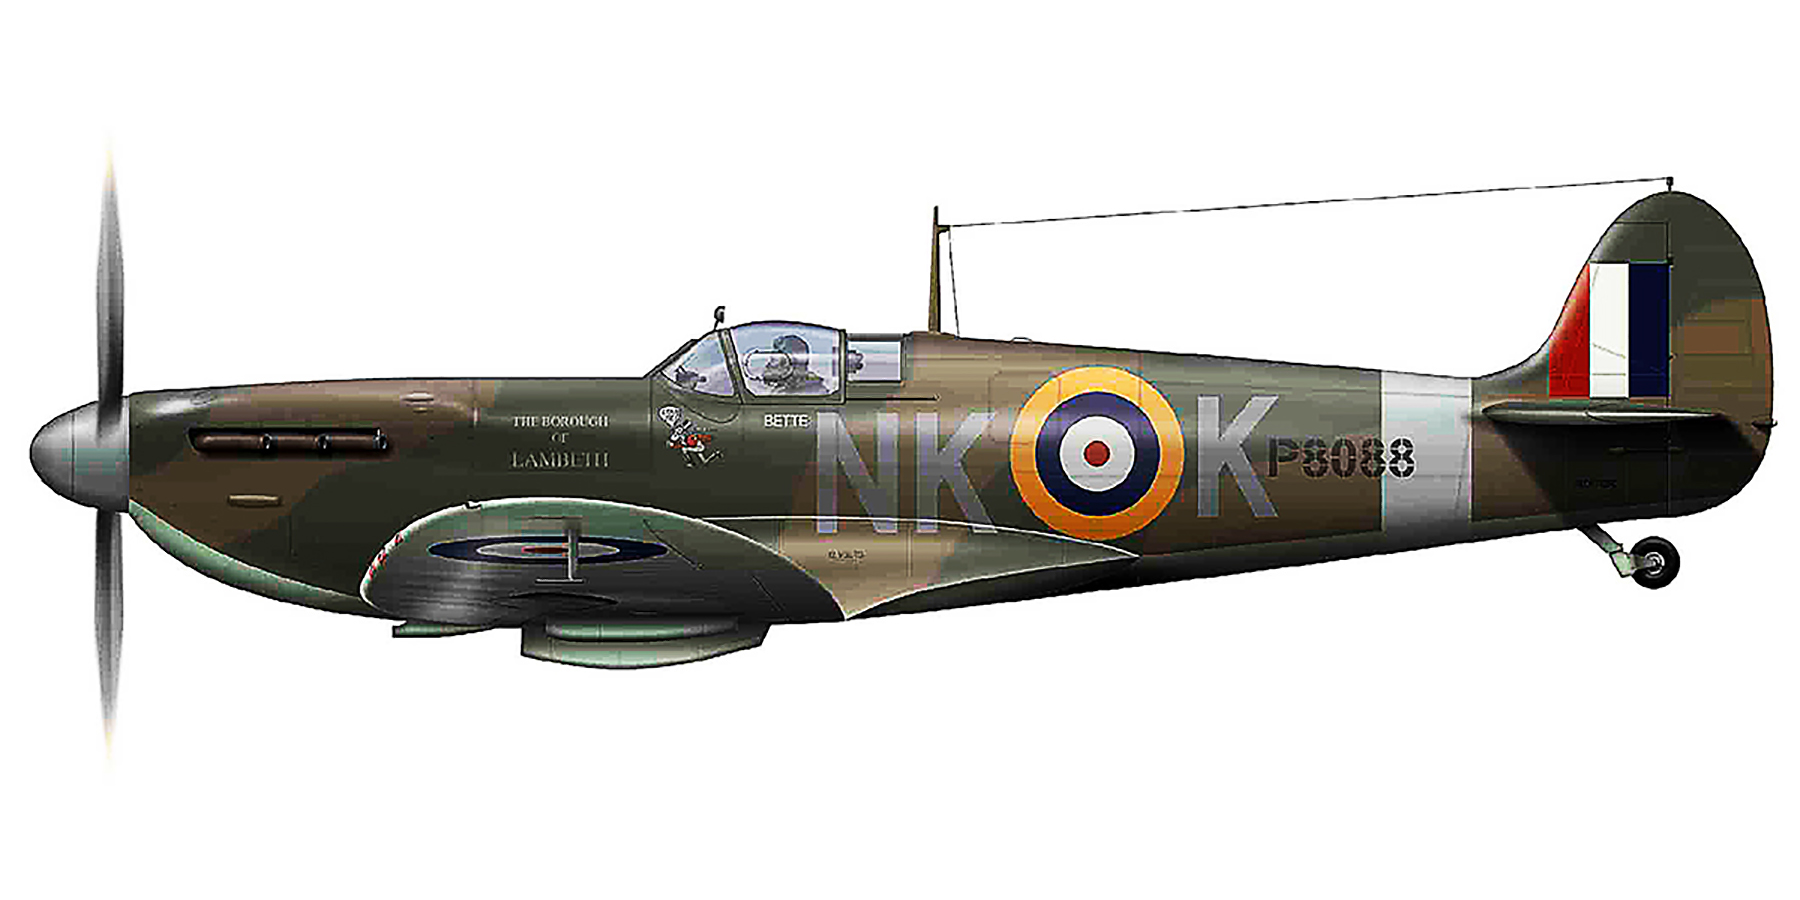 Spitfire MkIa RAF 118Sqn NKK P8088 Lumsden in Ibsley May 1941 0A